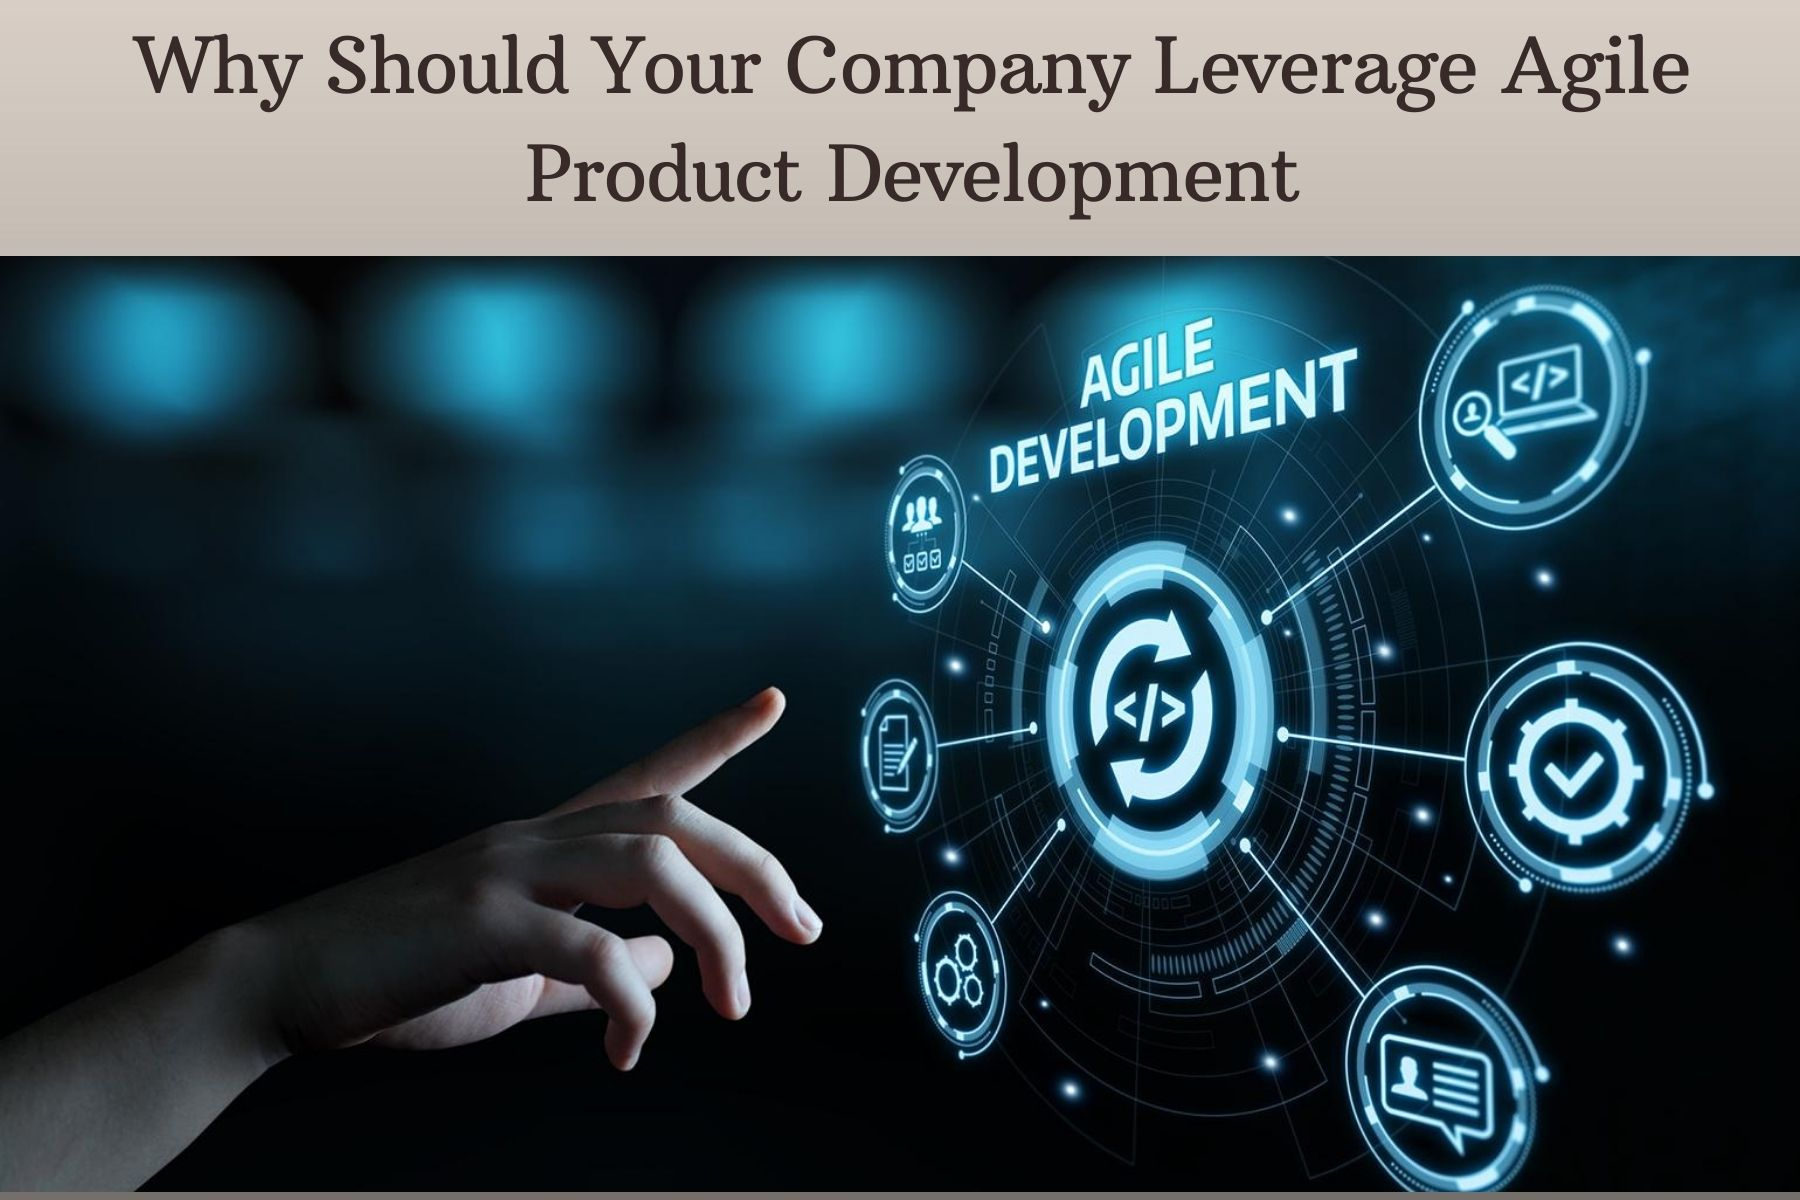 Why Should Your Company Leverage Agile Product Development?